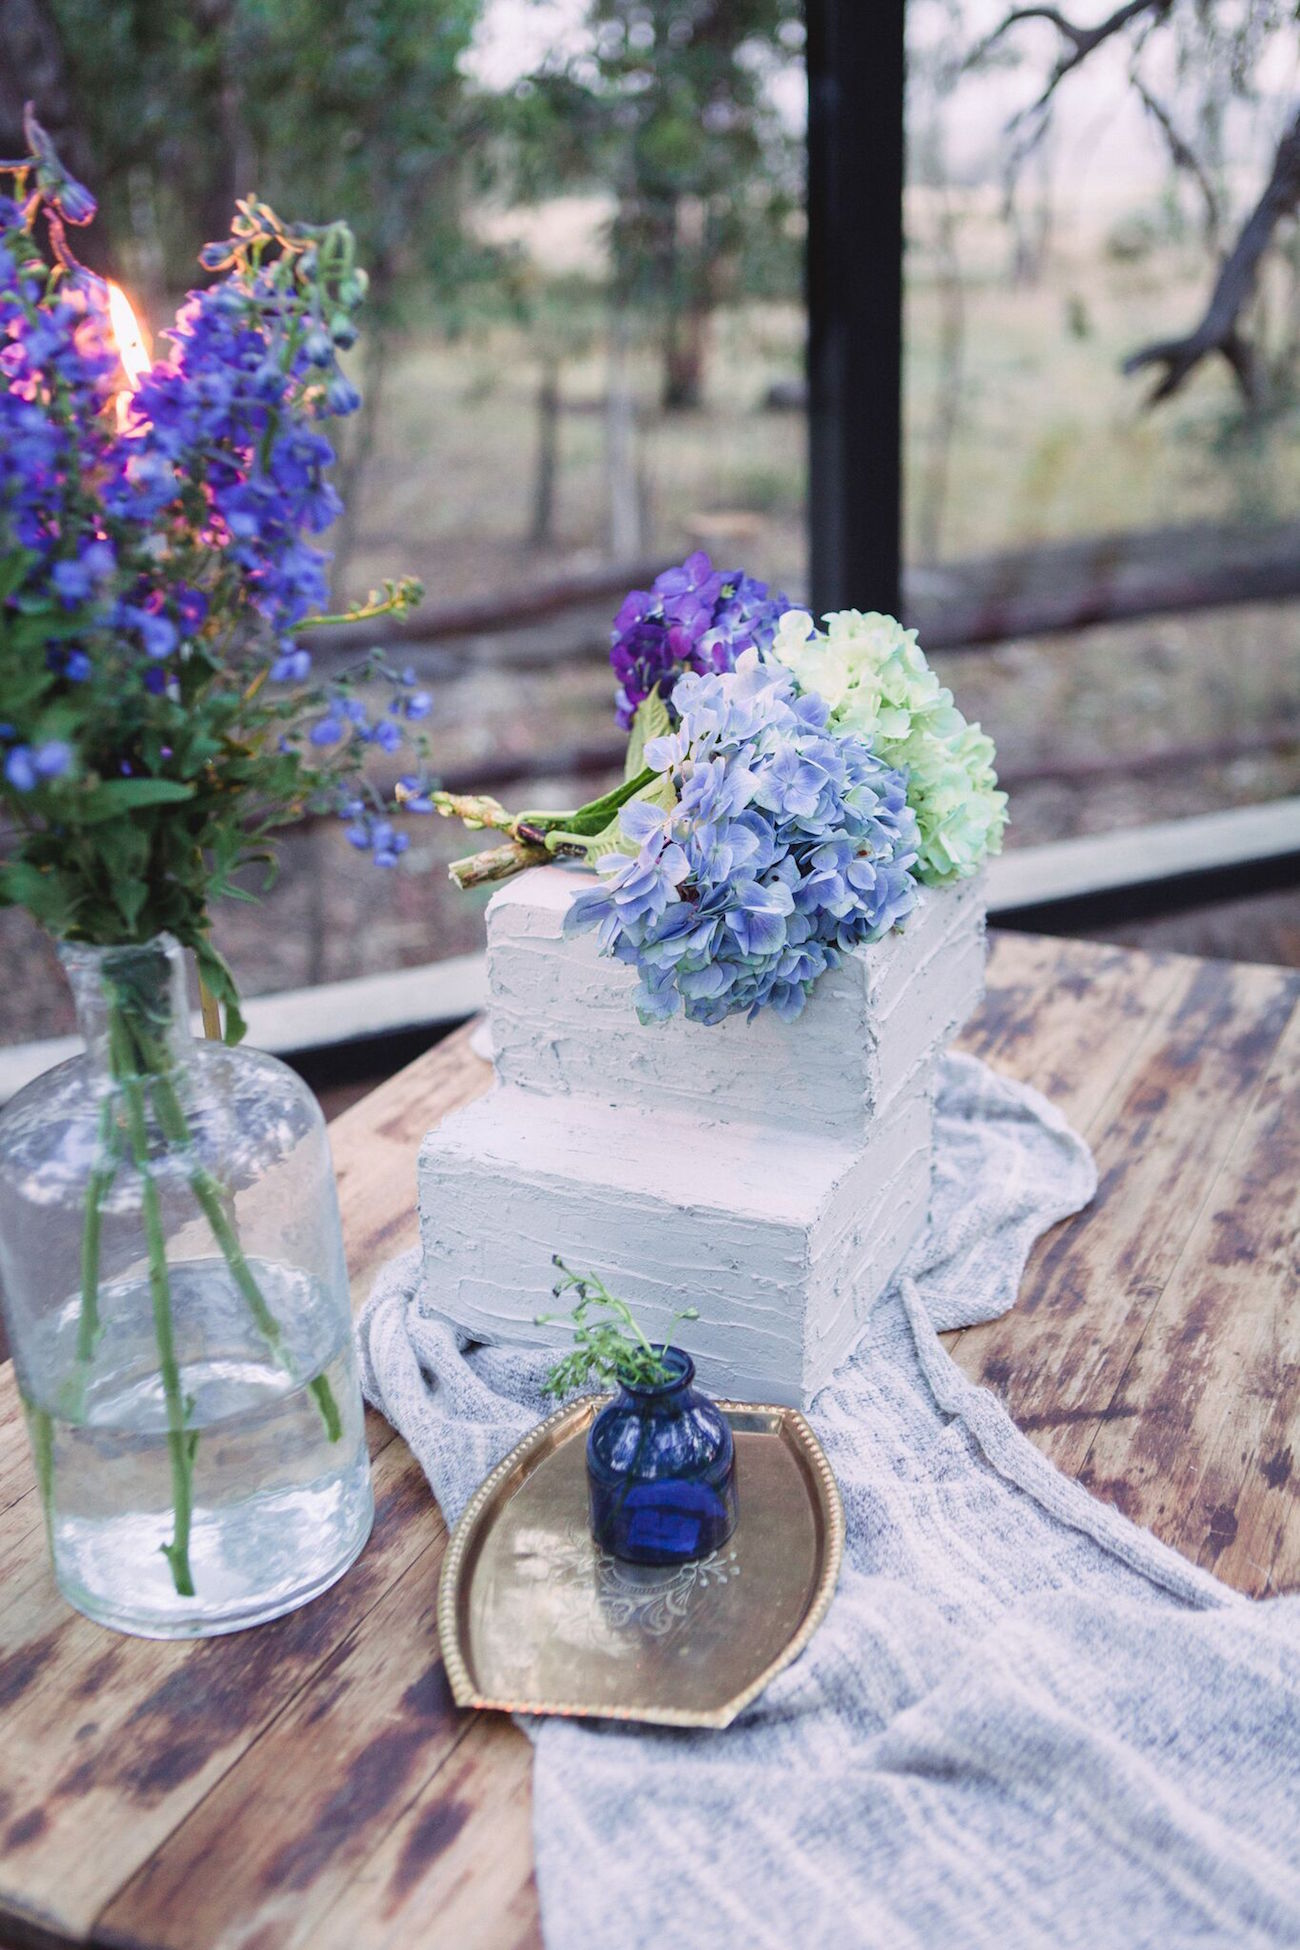 Concrete Texture Square Wedding Cake | Credit: Dust & Dreams Photography